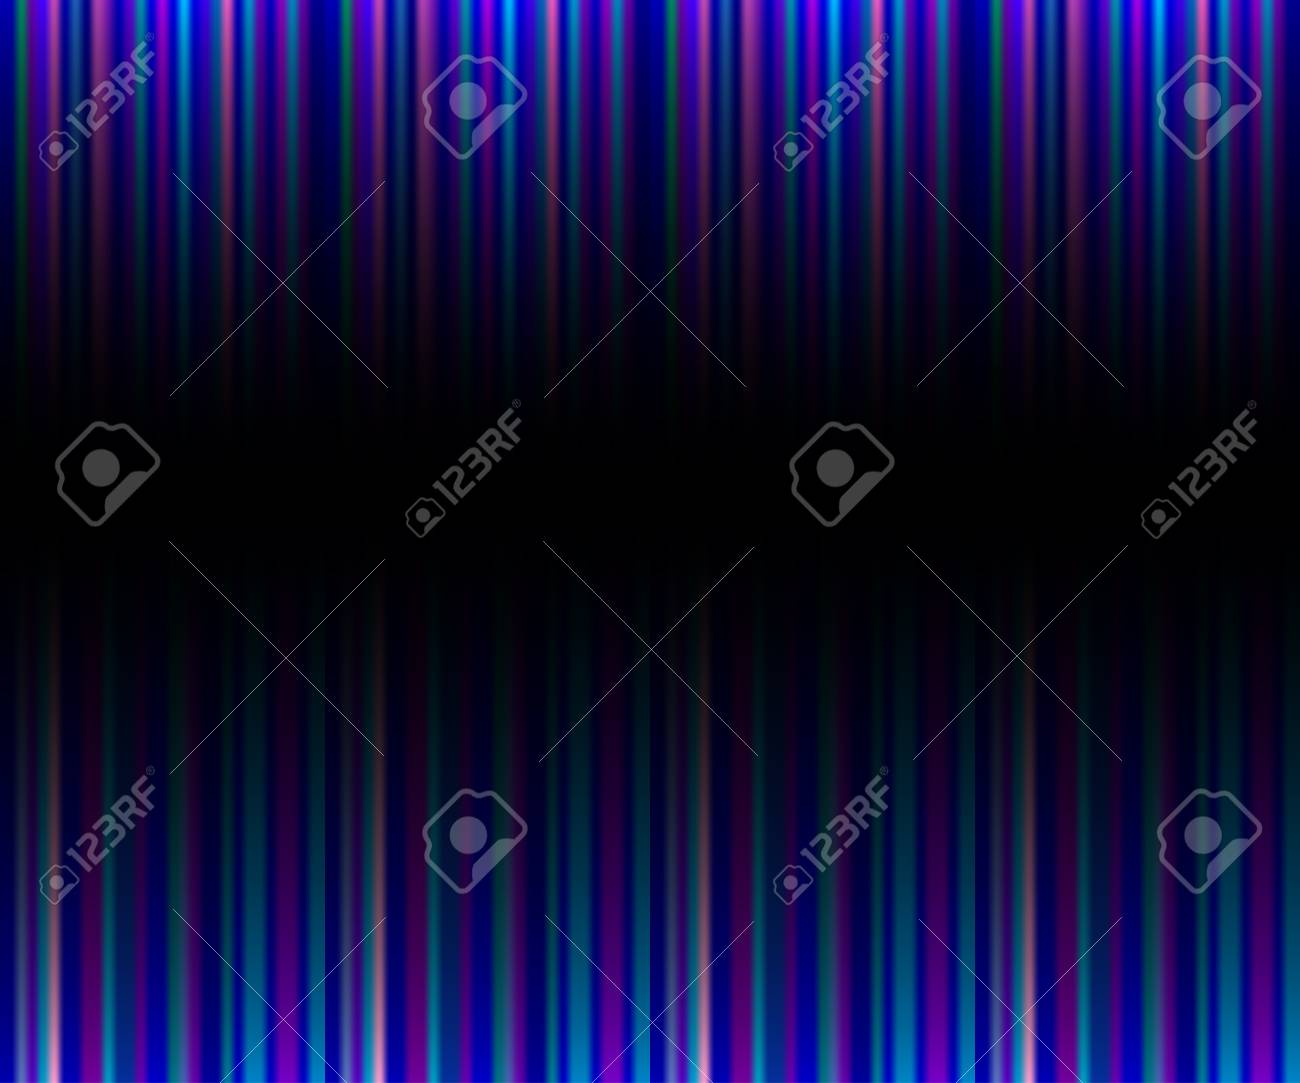 Marvelous Abstract Black Neon Background With Vertical Pink, Purple Stripes Stock  Vector   89515954